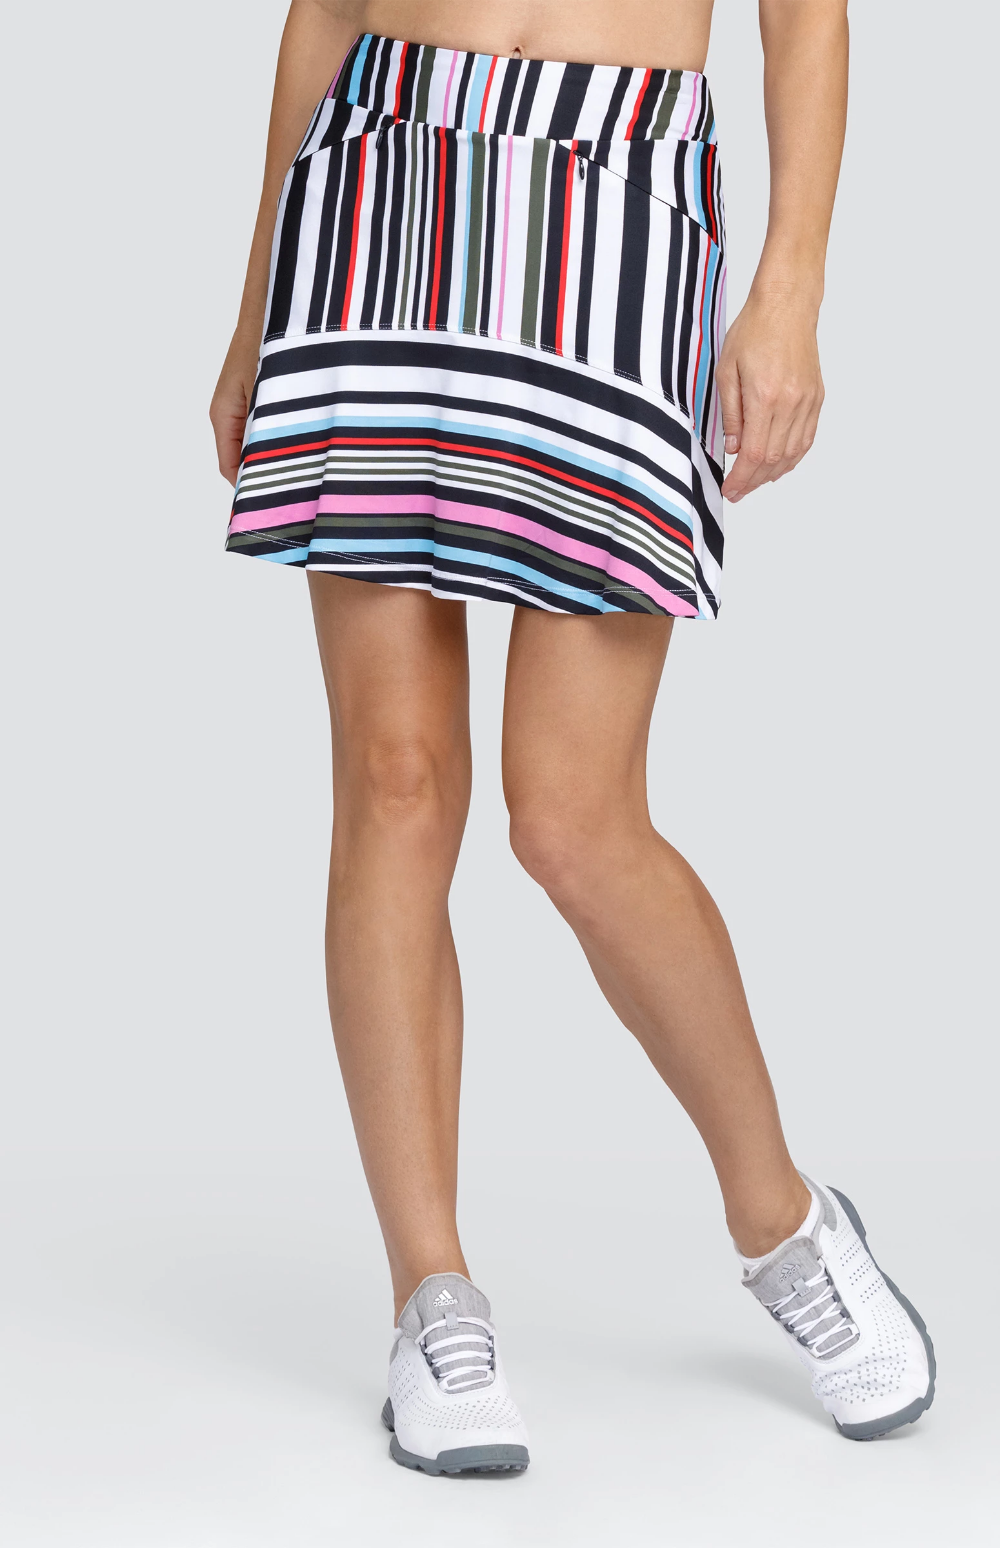 Honor Skort Better Than Basics For Golf Tail Activewear Women S Golf Fashion Apparel With Images Womens Golf Fashion Active Wear For Women Tail Activewear